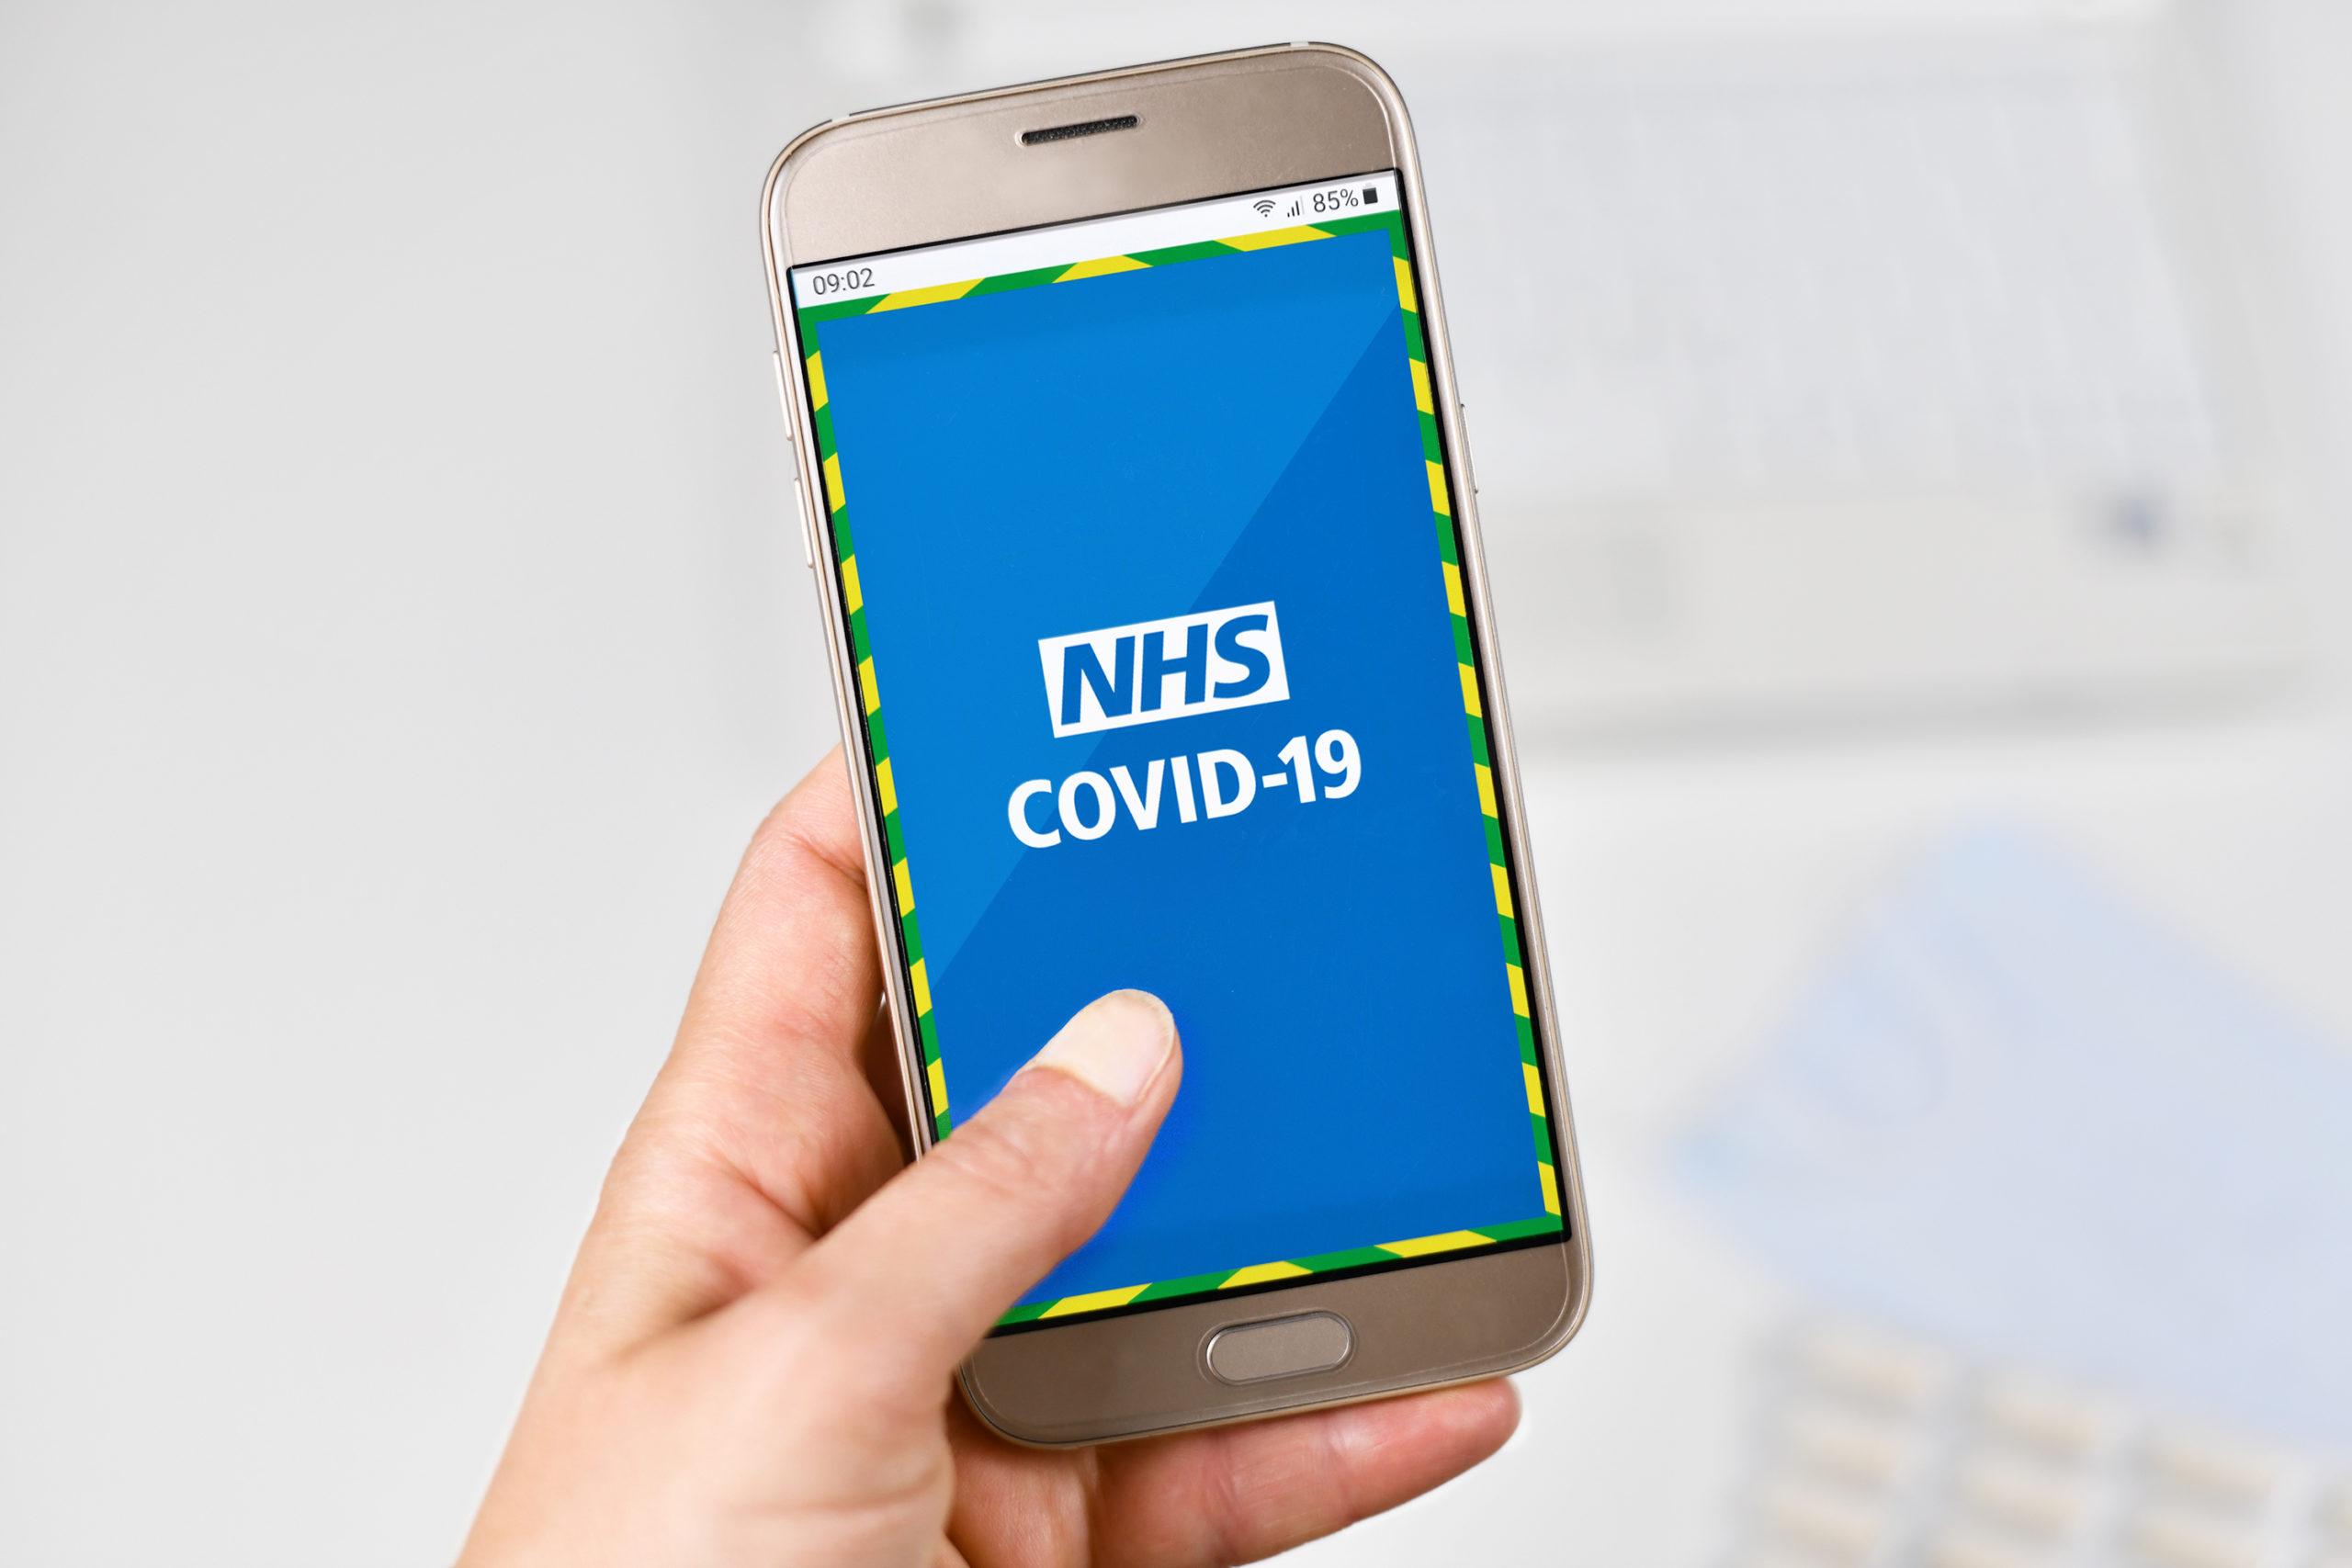 Covid-19 app impacts on building materials' supply chain